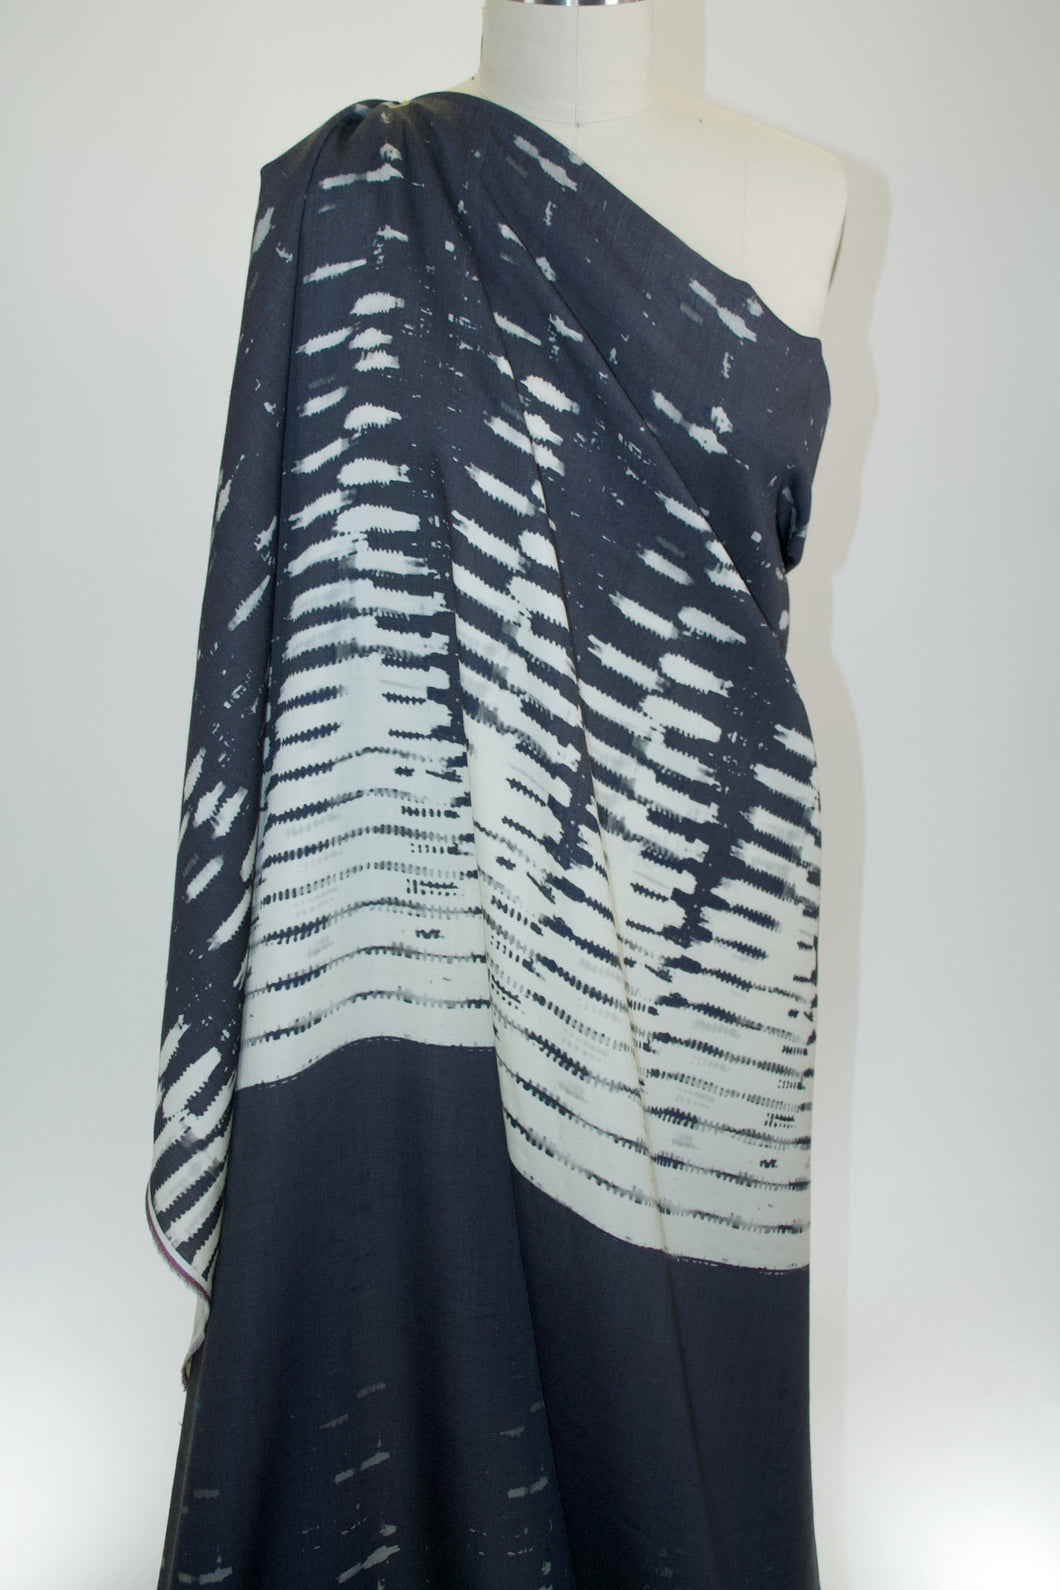 Italian Designer(s) Degradé Wool Challis Panel Print - Black/Gray/Ivory/Blue